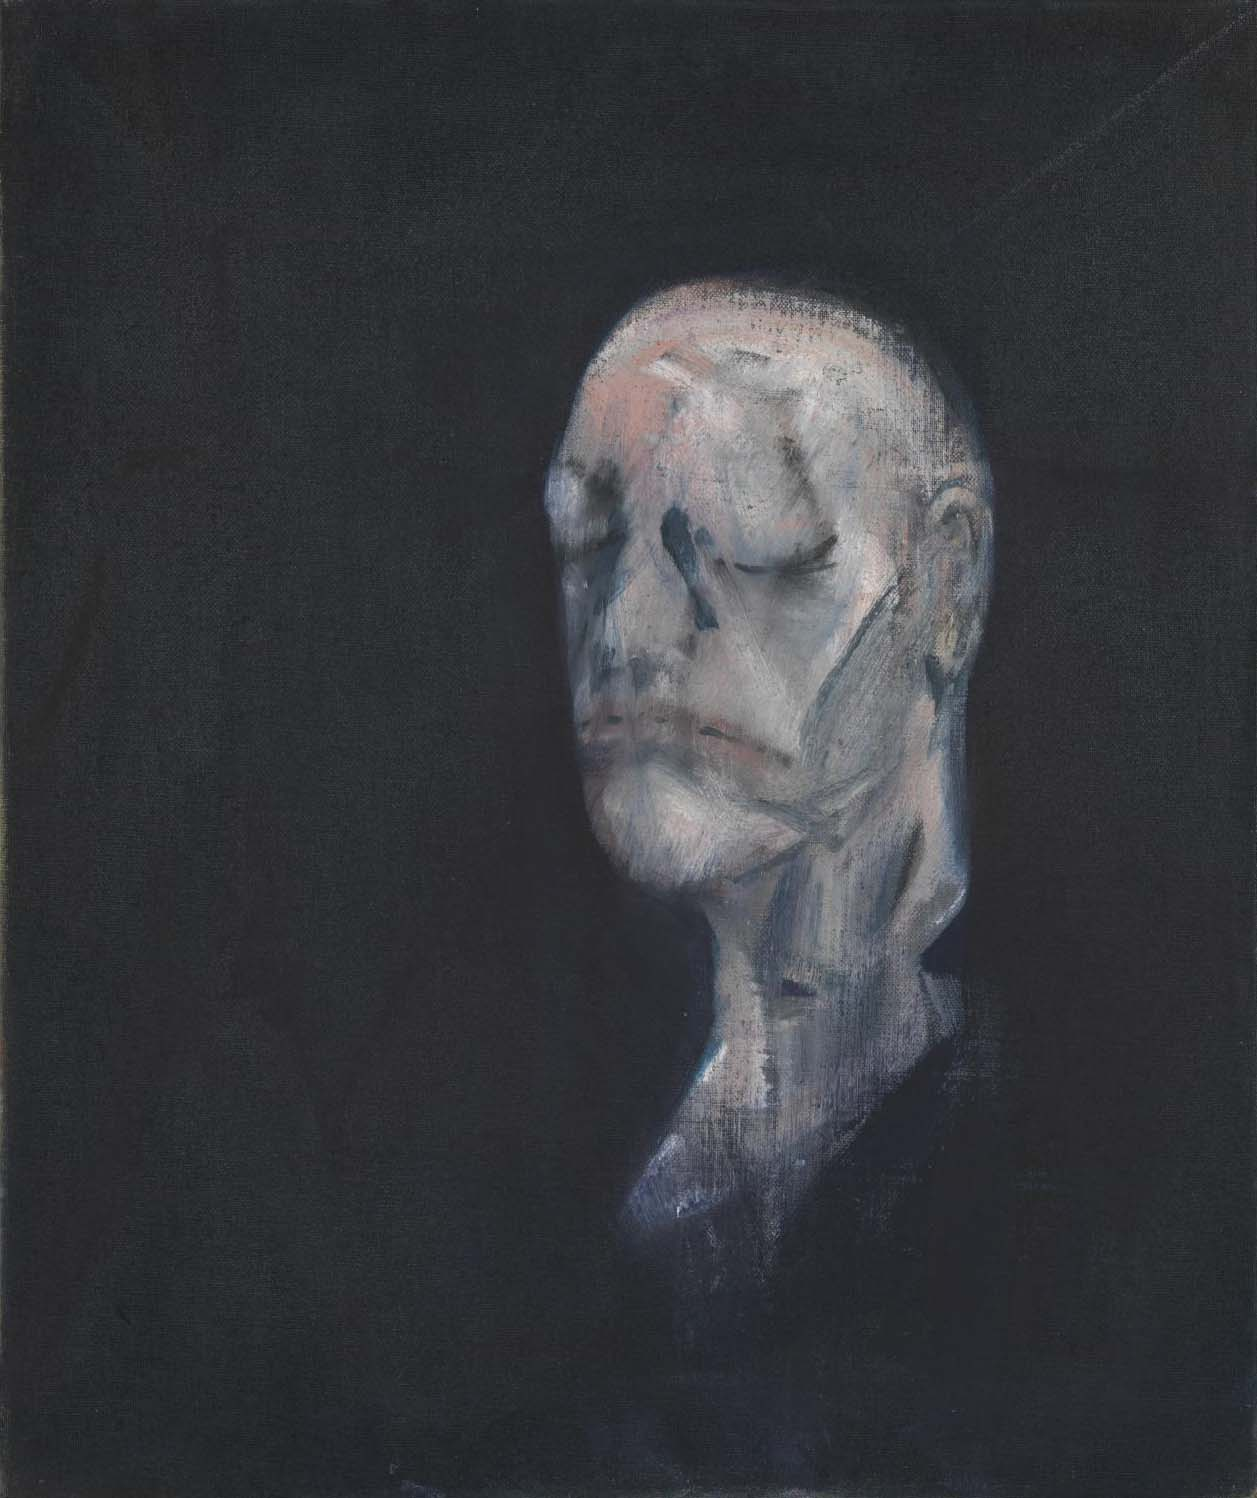 Francis Bacon: Study for Portrait II (after the Life Mask of William Blake),1955 | Image from Tate Gallery (fair use)